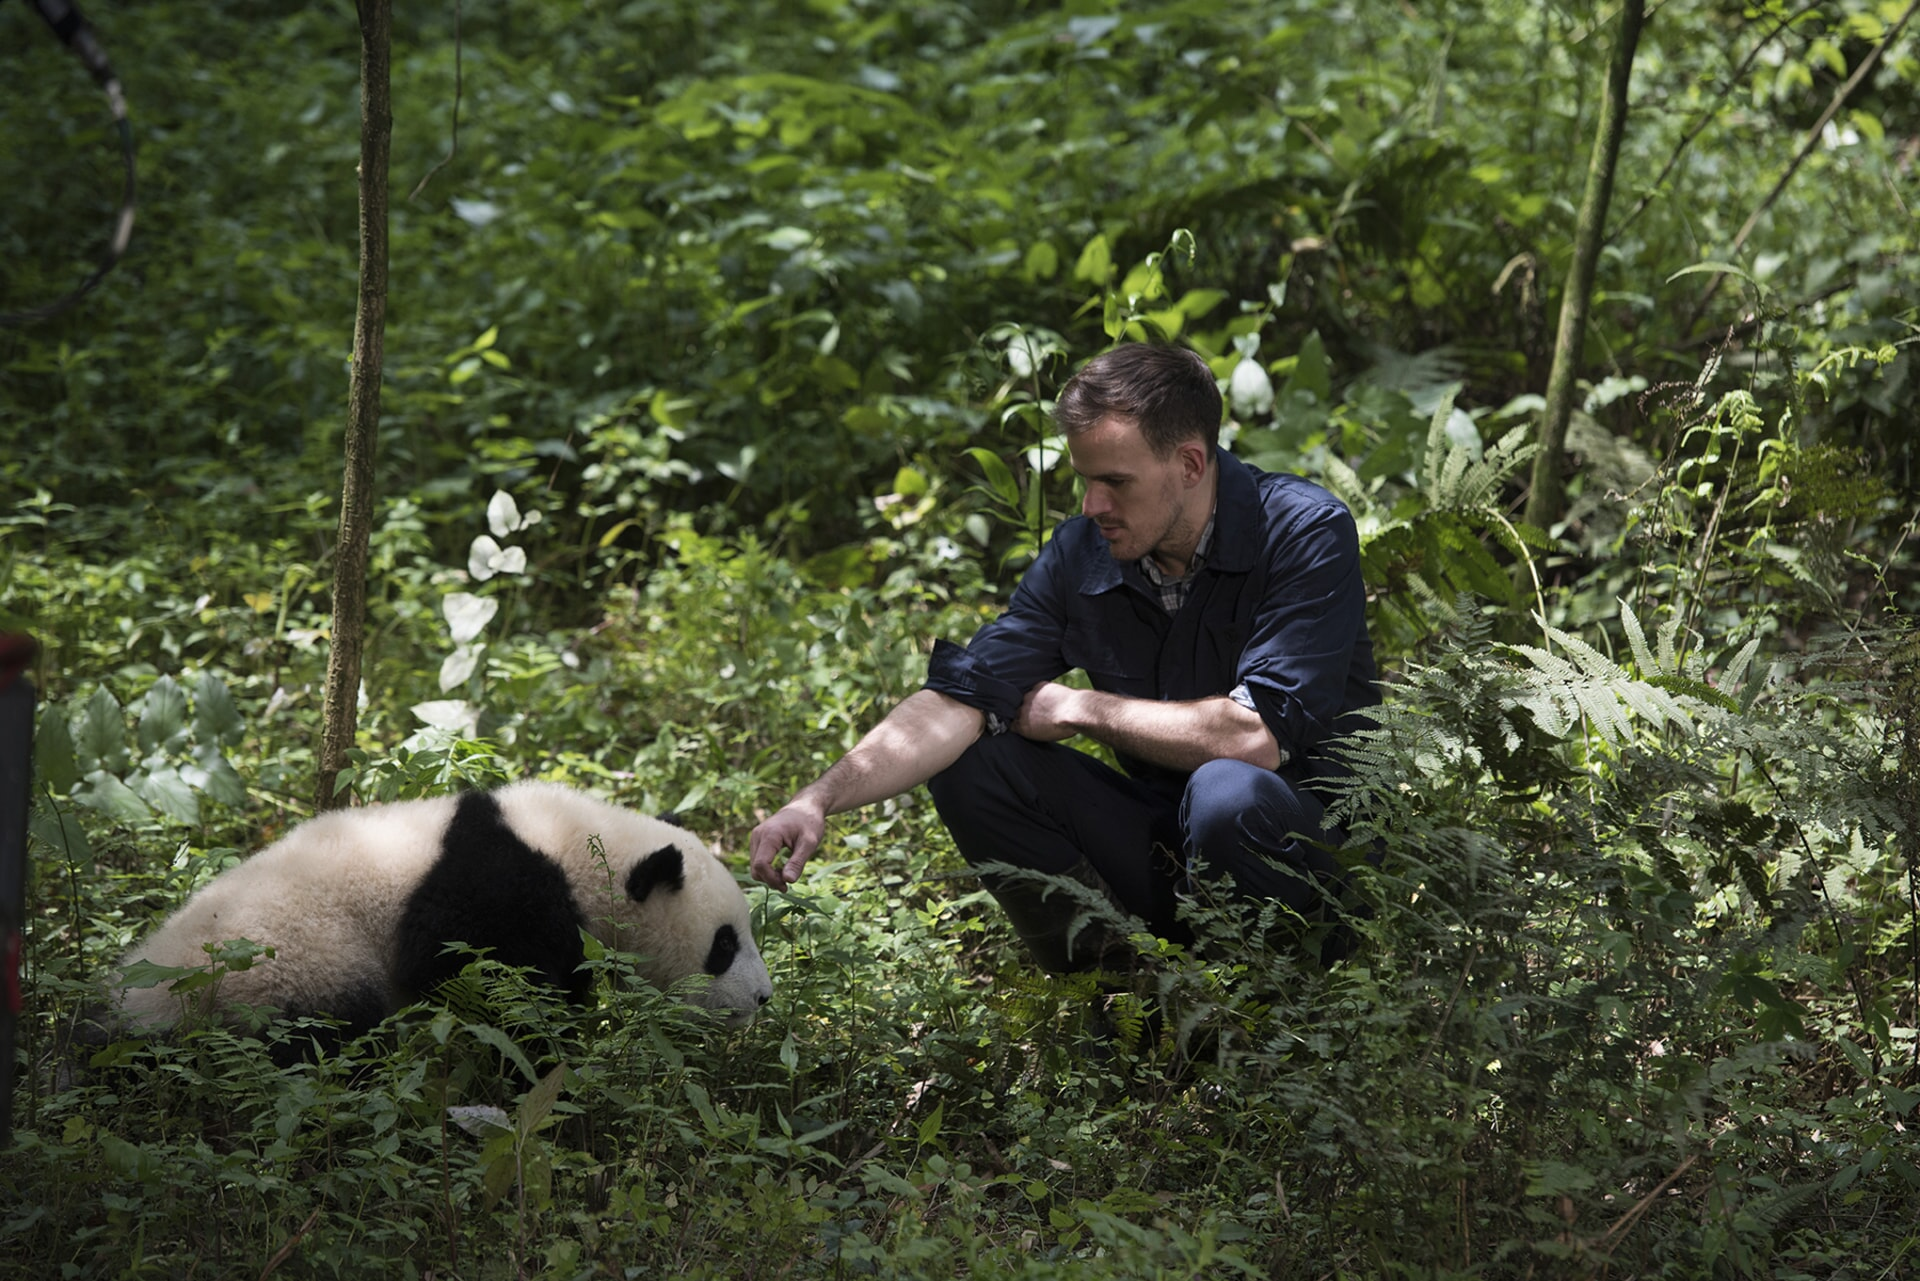 A Giant Panda and DR. JAKE OWENS, Ph.D. (wildlife conservation biologist) at Panda Valley in Dujiangyan, China as seen in the new IMAX® film, PANDAS